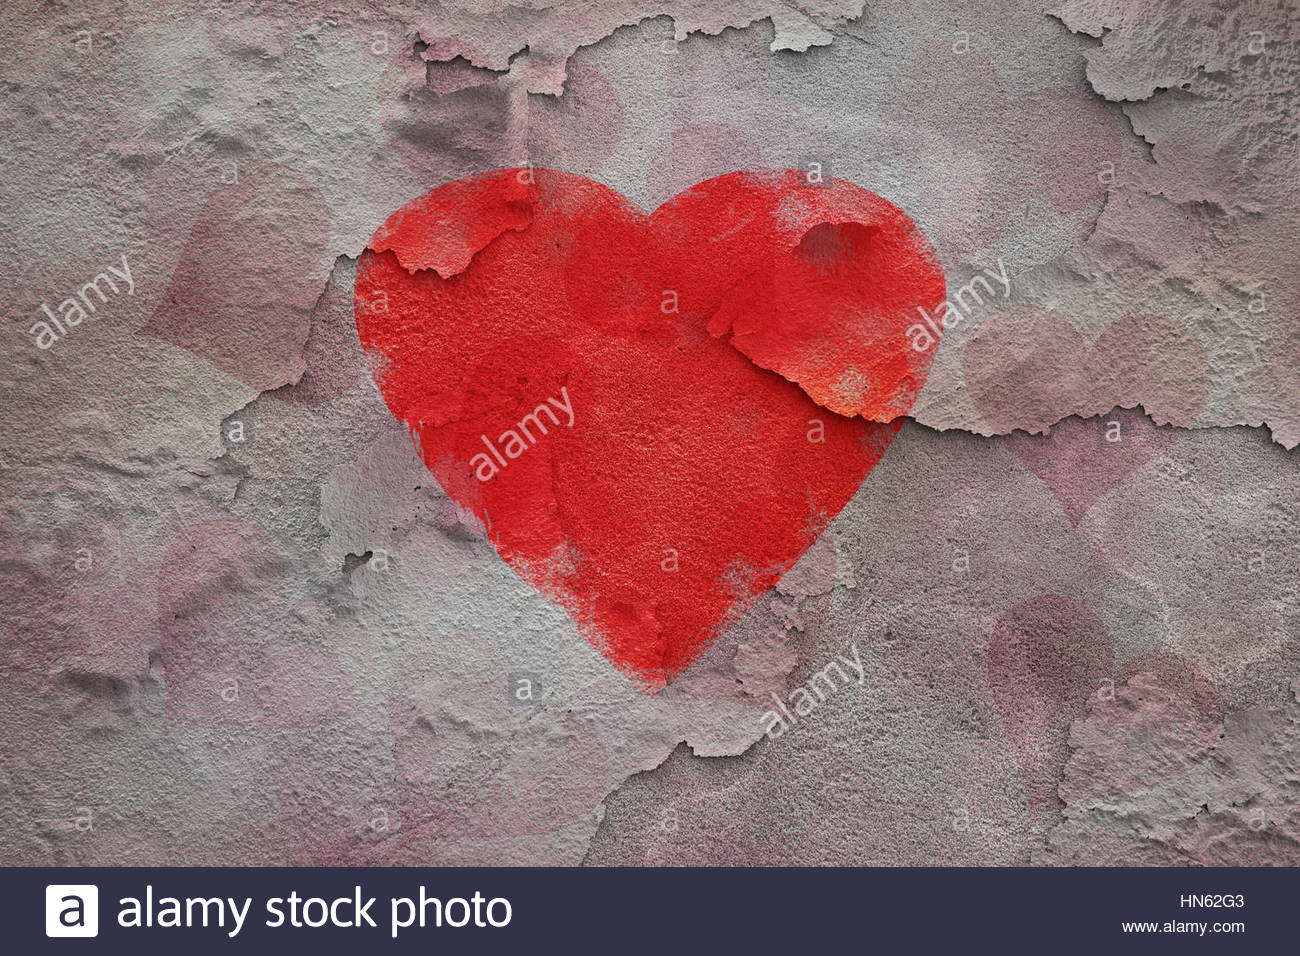 Big red broken heart symbol on textured cracked wall background big red broken heart symbol on textured cracked wall background buycottarizona Image collections